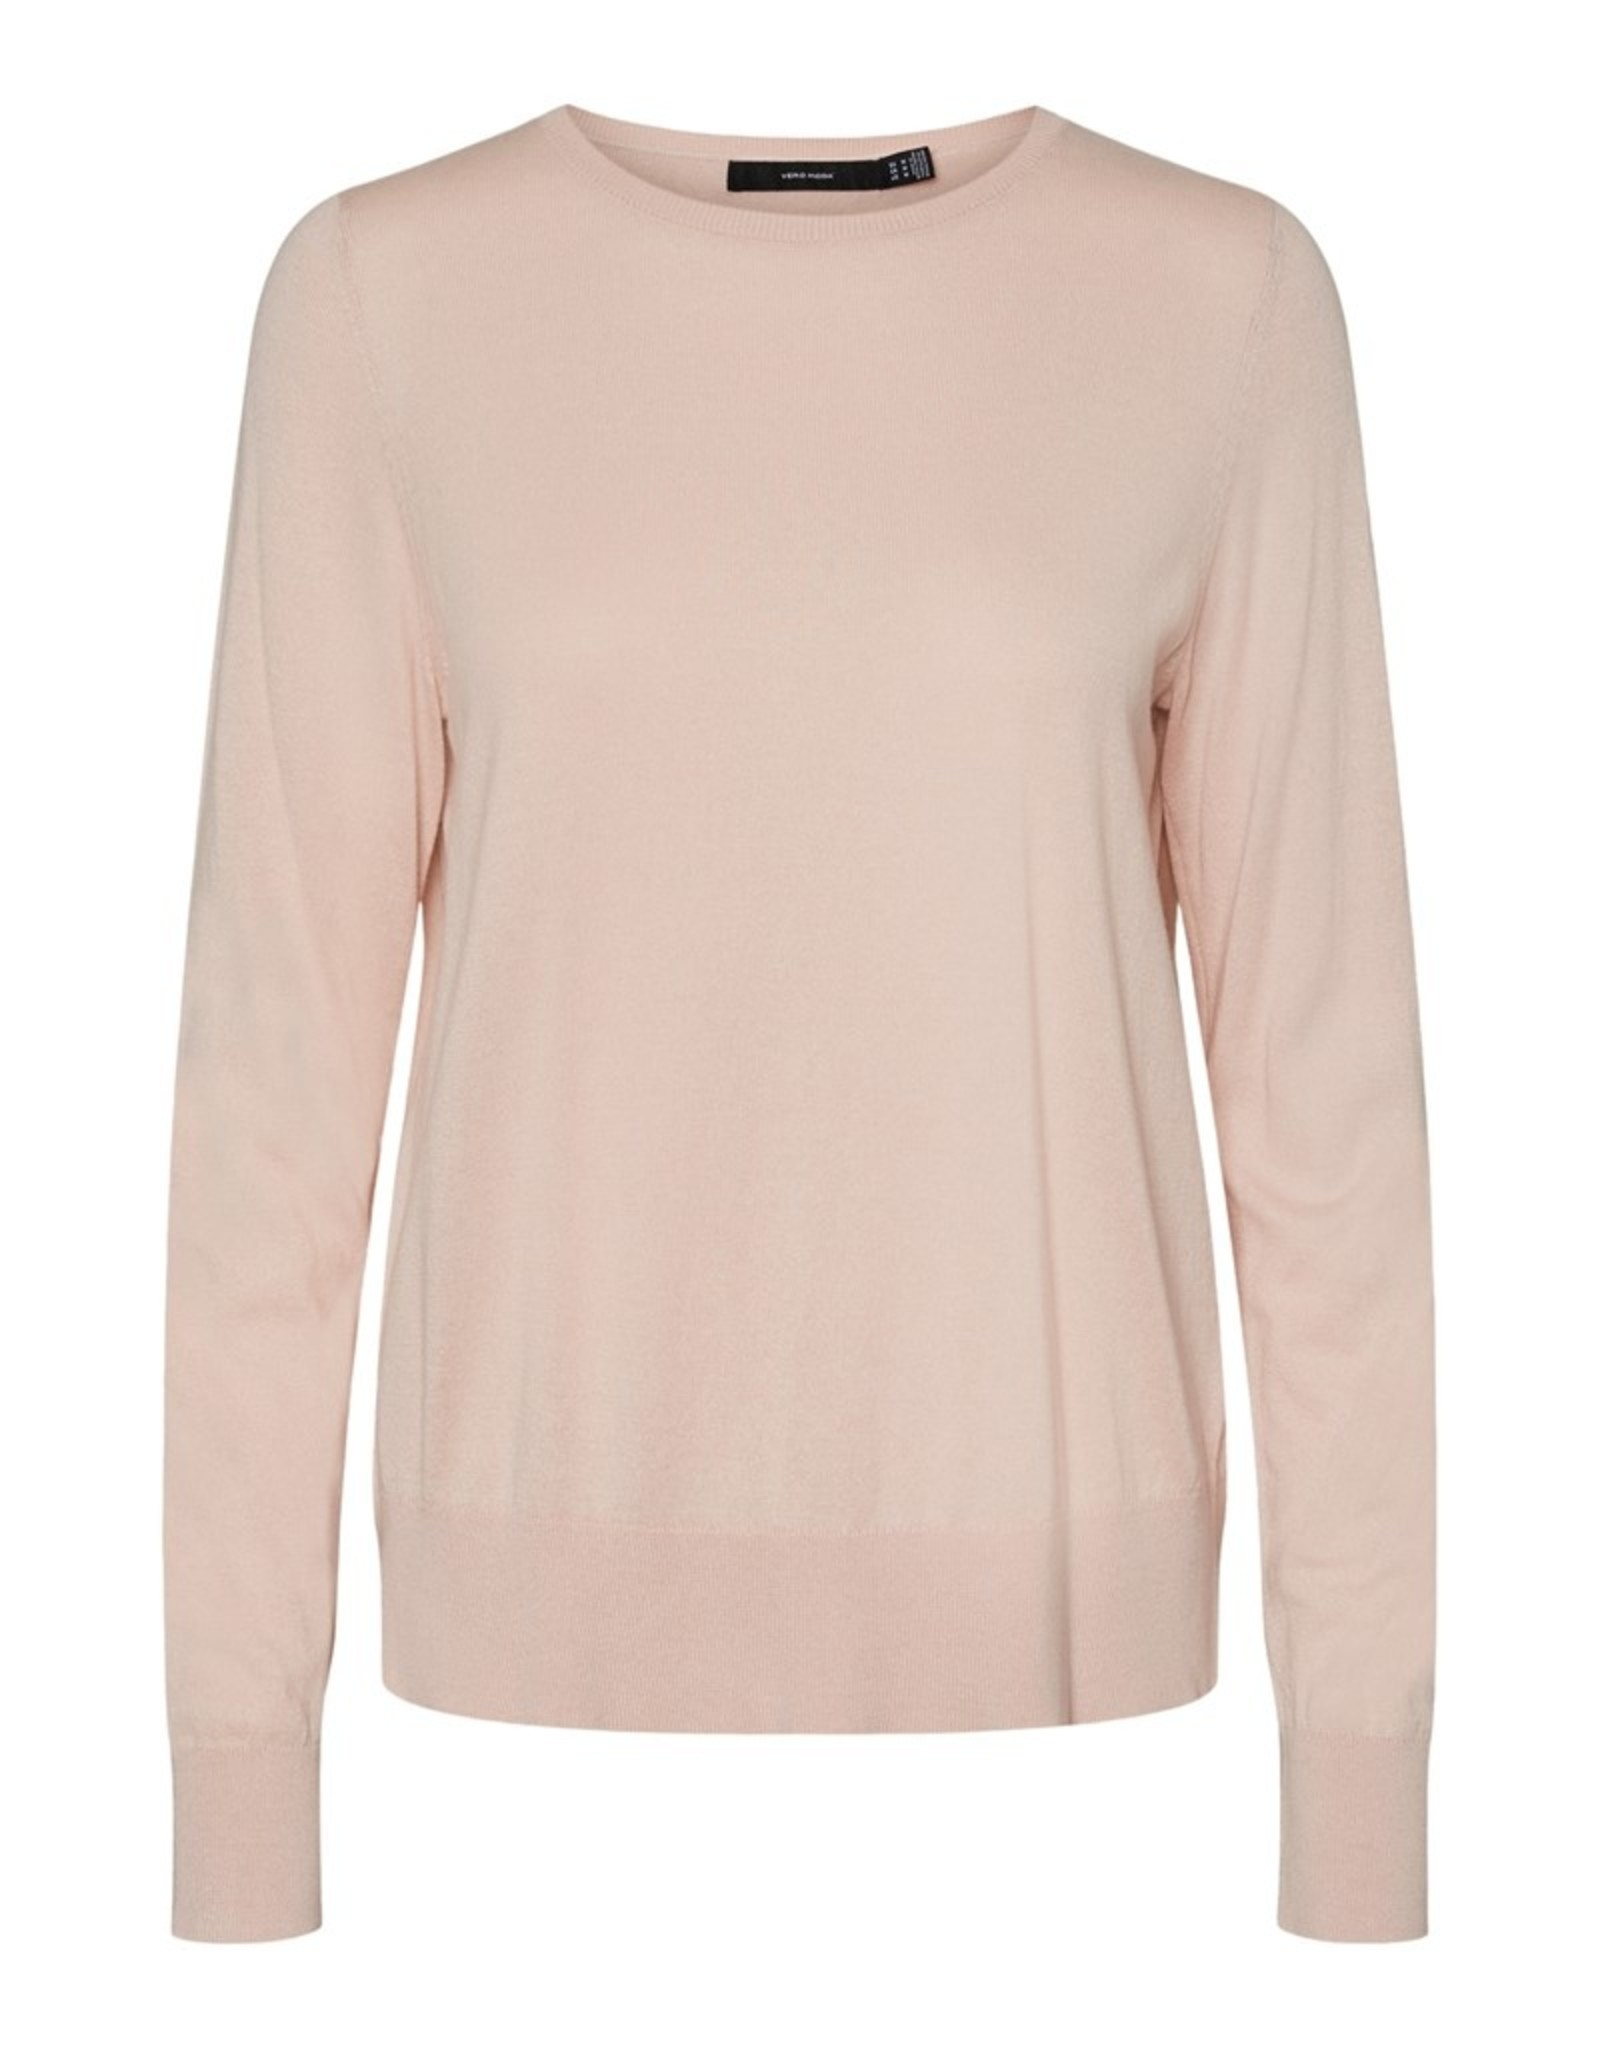 Vero Moda Jennifer Open Back Sweater